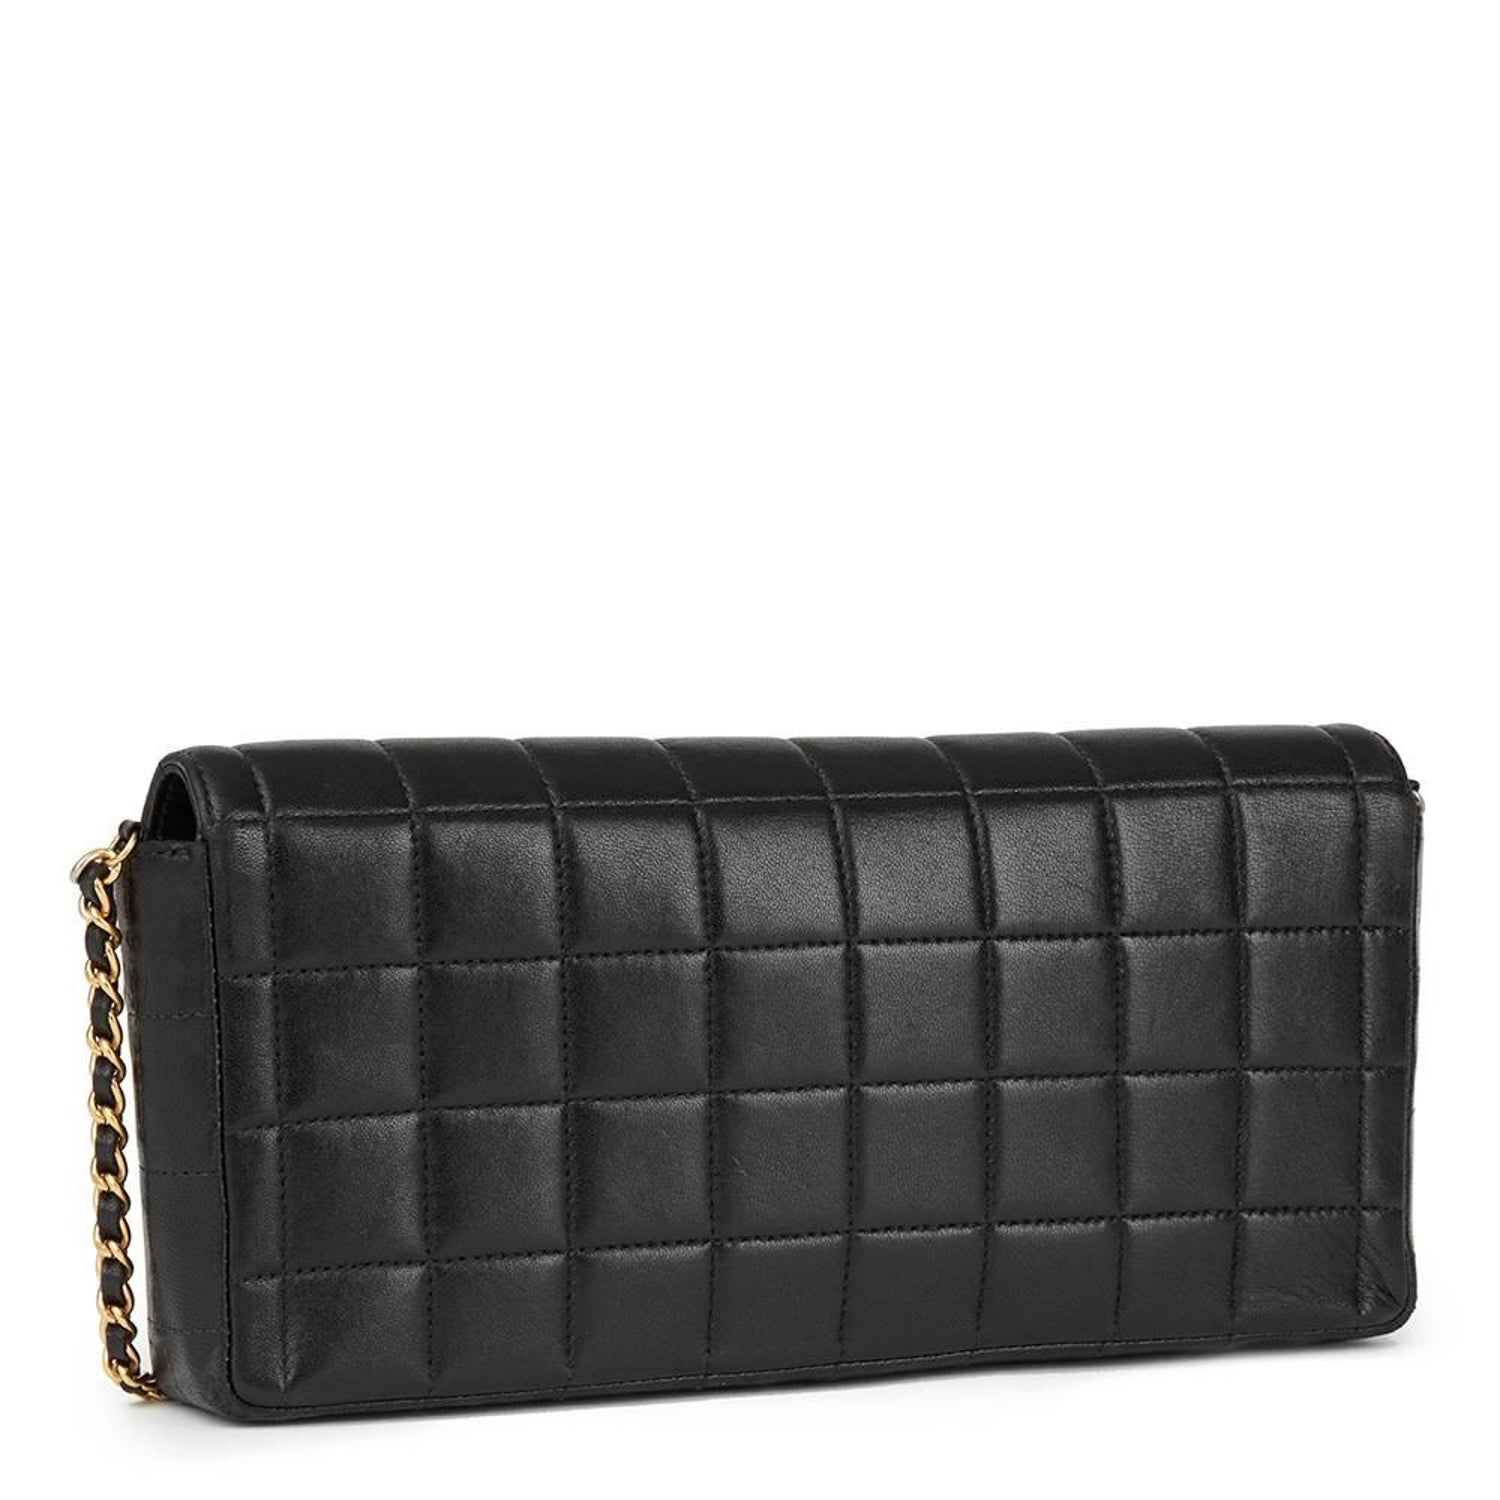 7513478c48a7 2003 Chanel Black Quilted Lambskin East West Chocolate Bar Flap Bag at  1stdibs